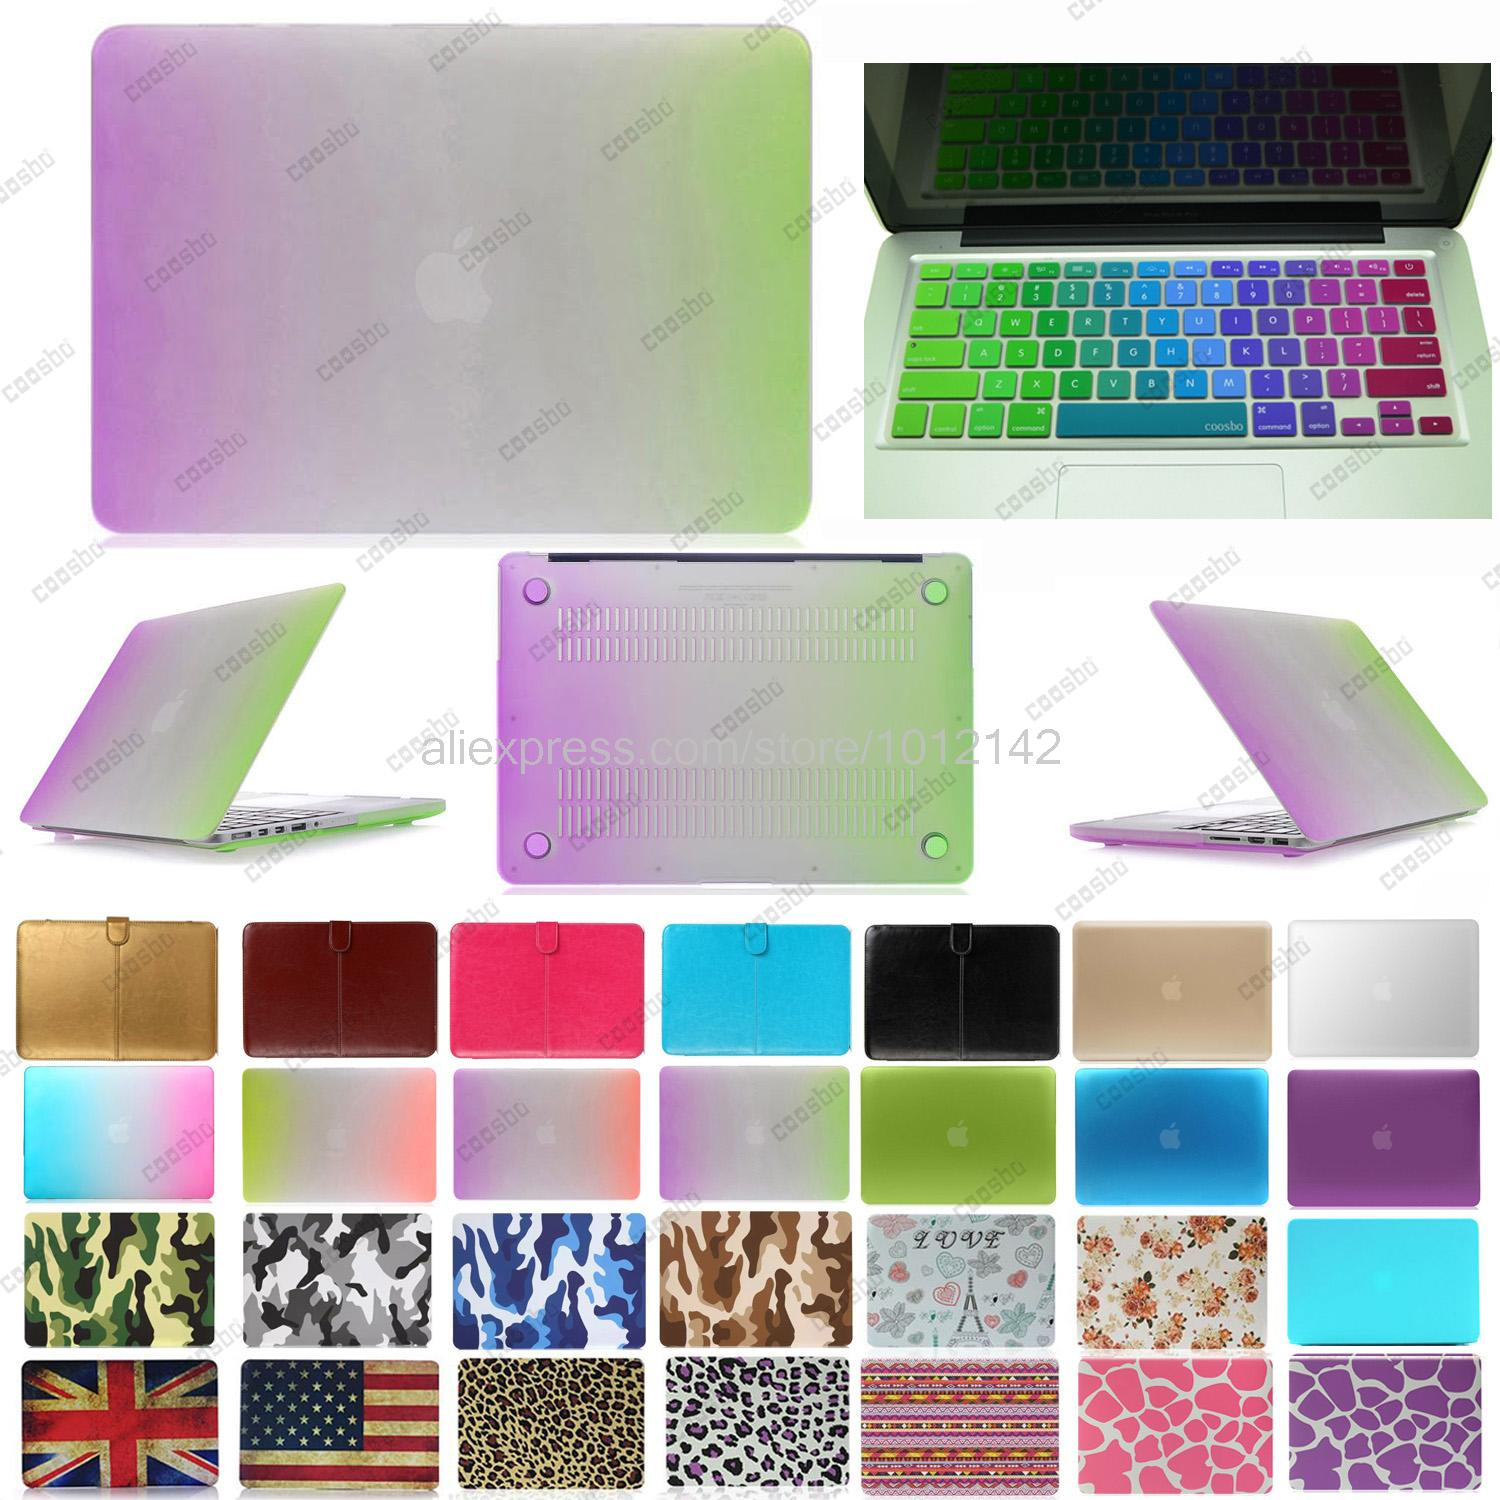 "2in1 freeship colorful shell Hard Case For mac Macbook Air Pro Retina 13"" 15"" + Germany German Keyboard Cover Skin protector(China (Mainland))"